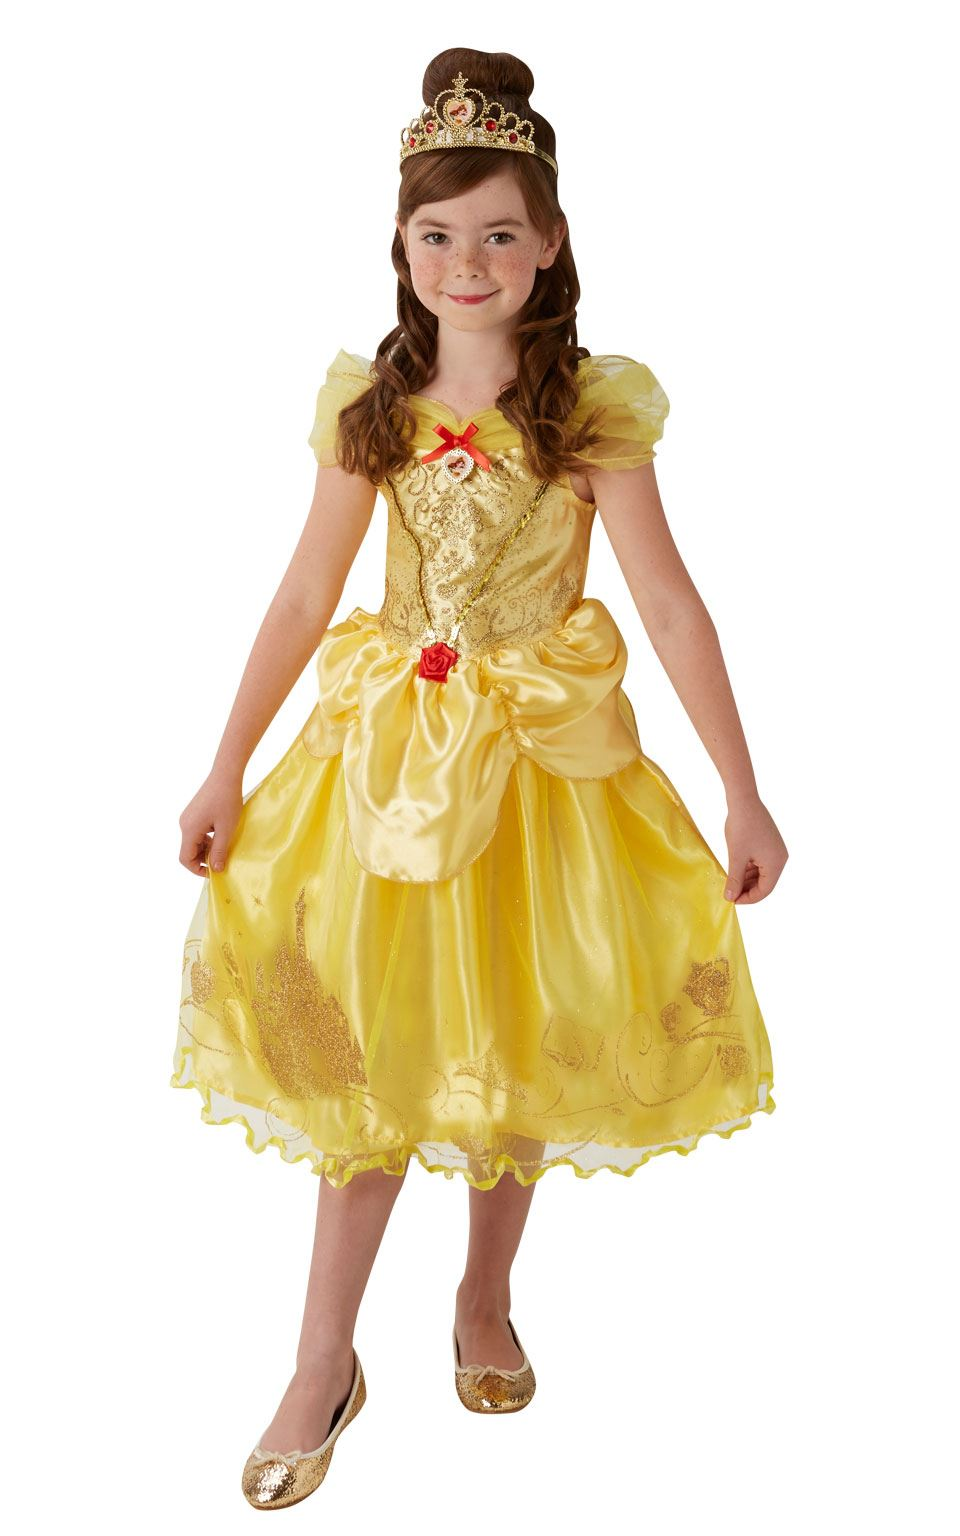 c04606796ce Details about Girls Storyteller Golden Belle Beauty & The Beast Disney  Fancy Dress Costume